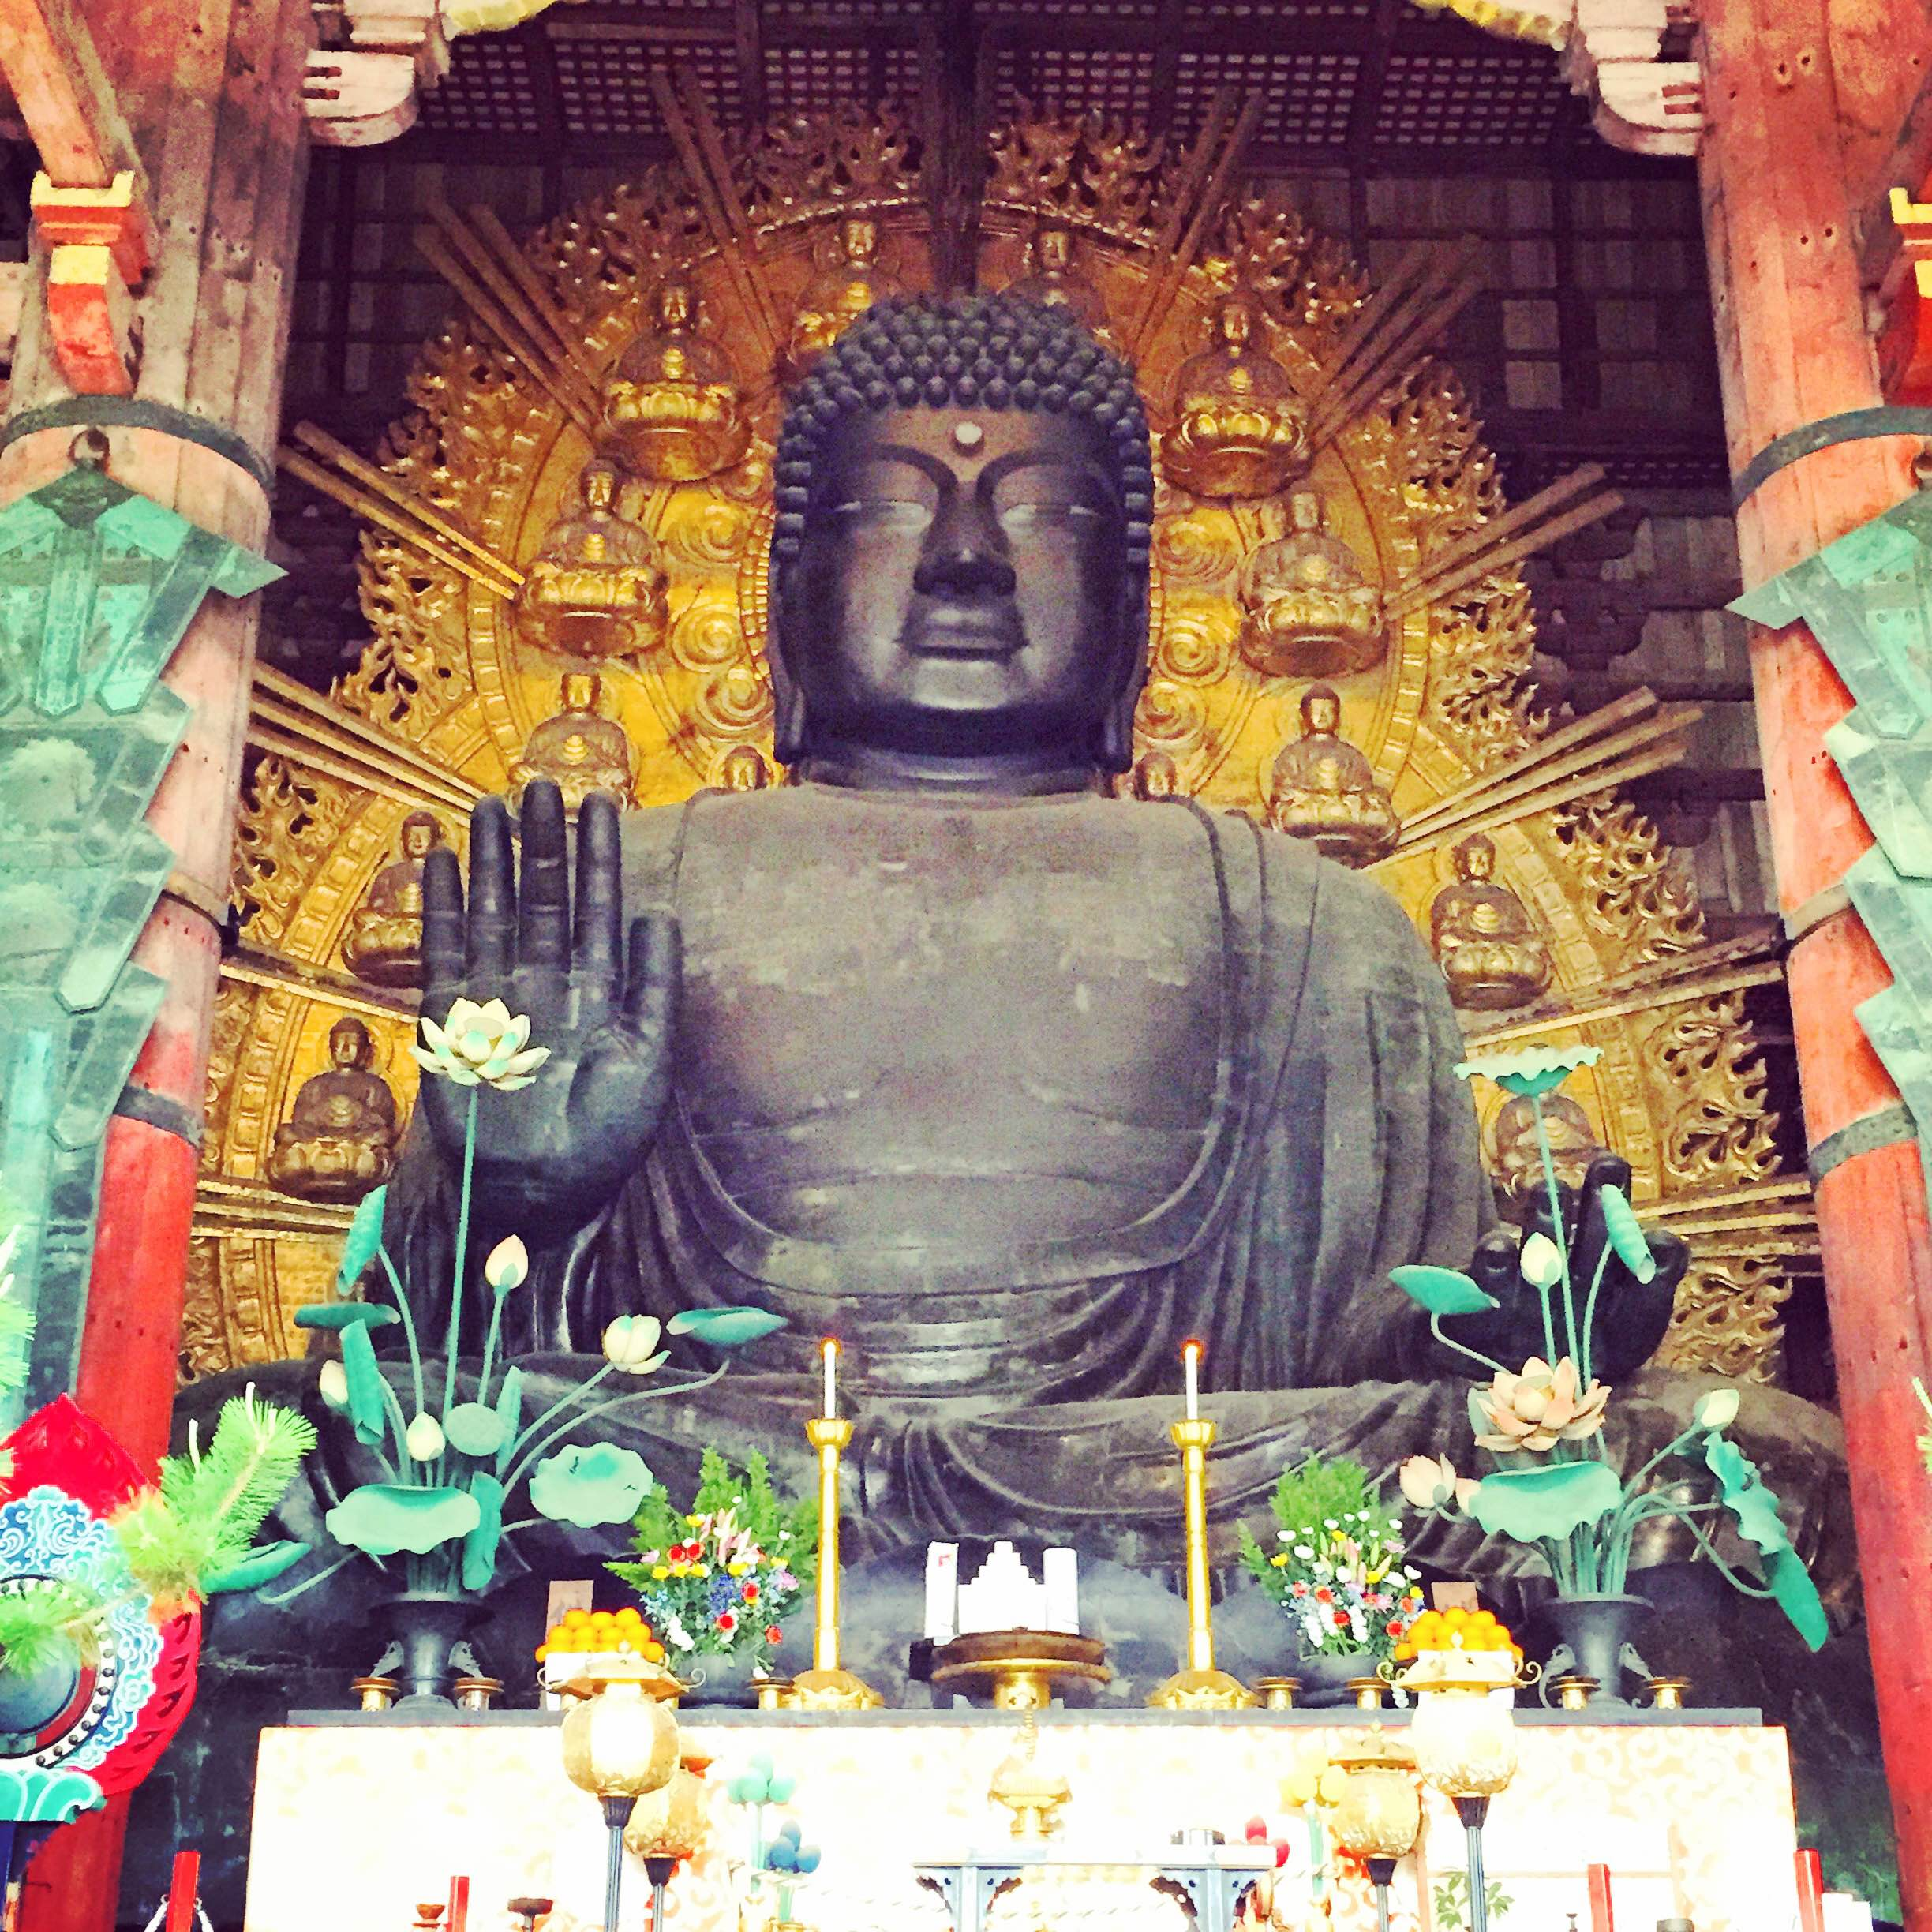 The world's largest bronze statue of Buddha (known in Japanese as Daibutsu), located inside Todaiji Temple.